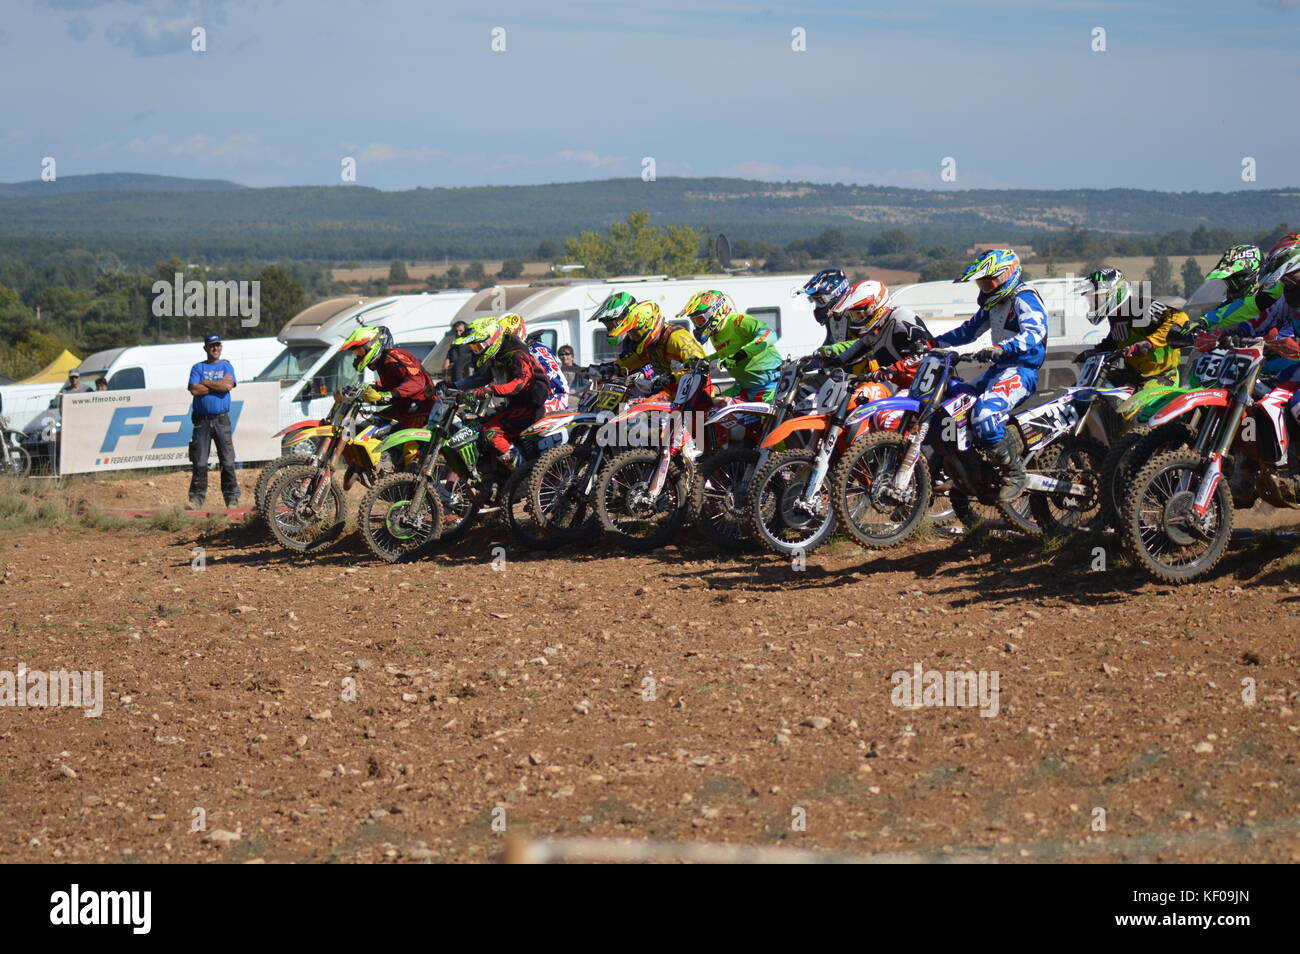 A Motocross race in Saint Christol 23 at 24 september 2017 (south of france) - Stock Image